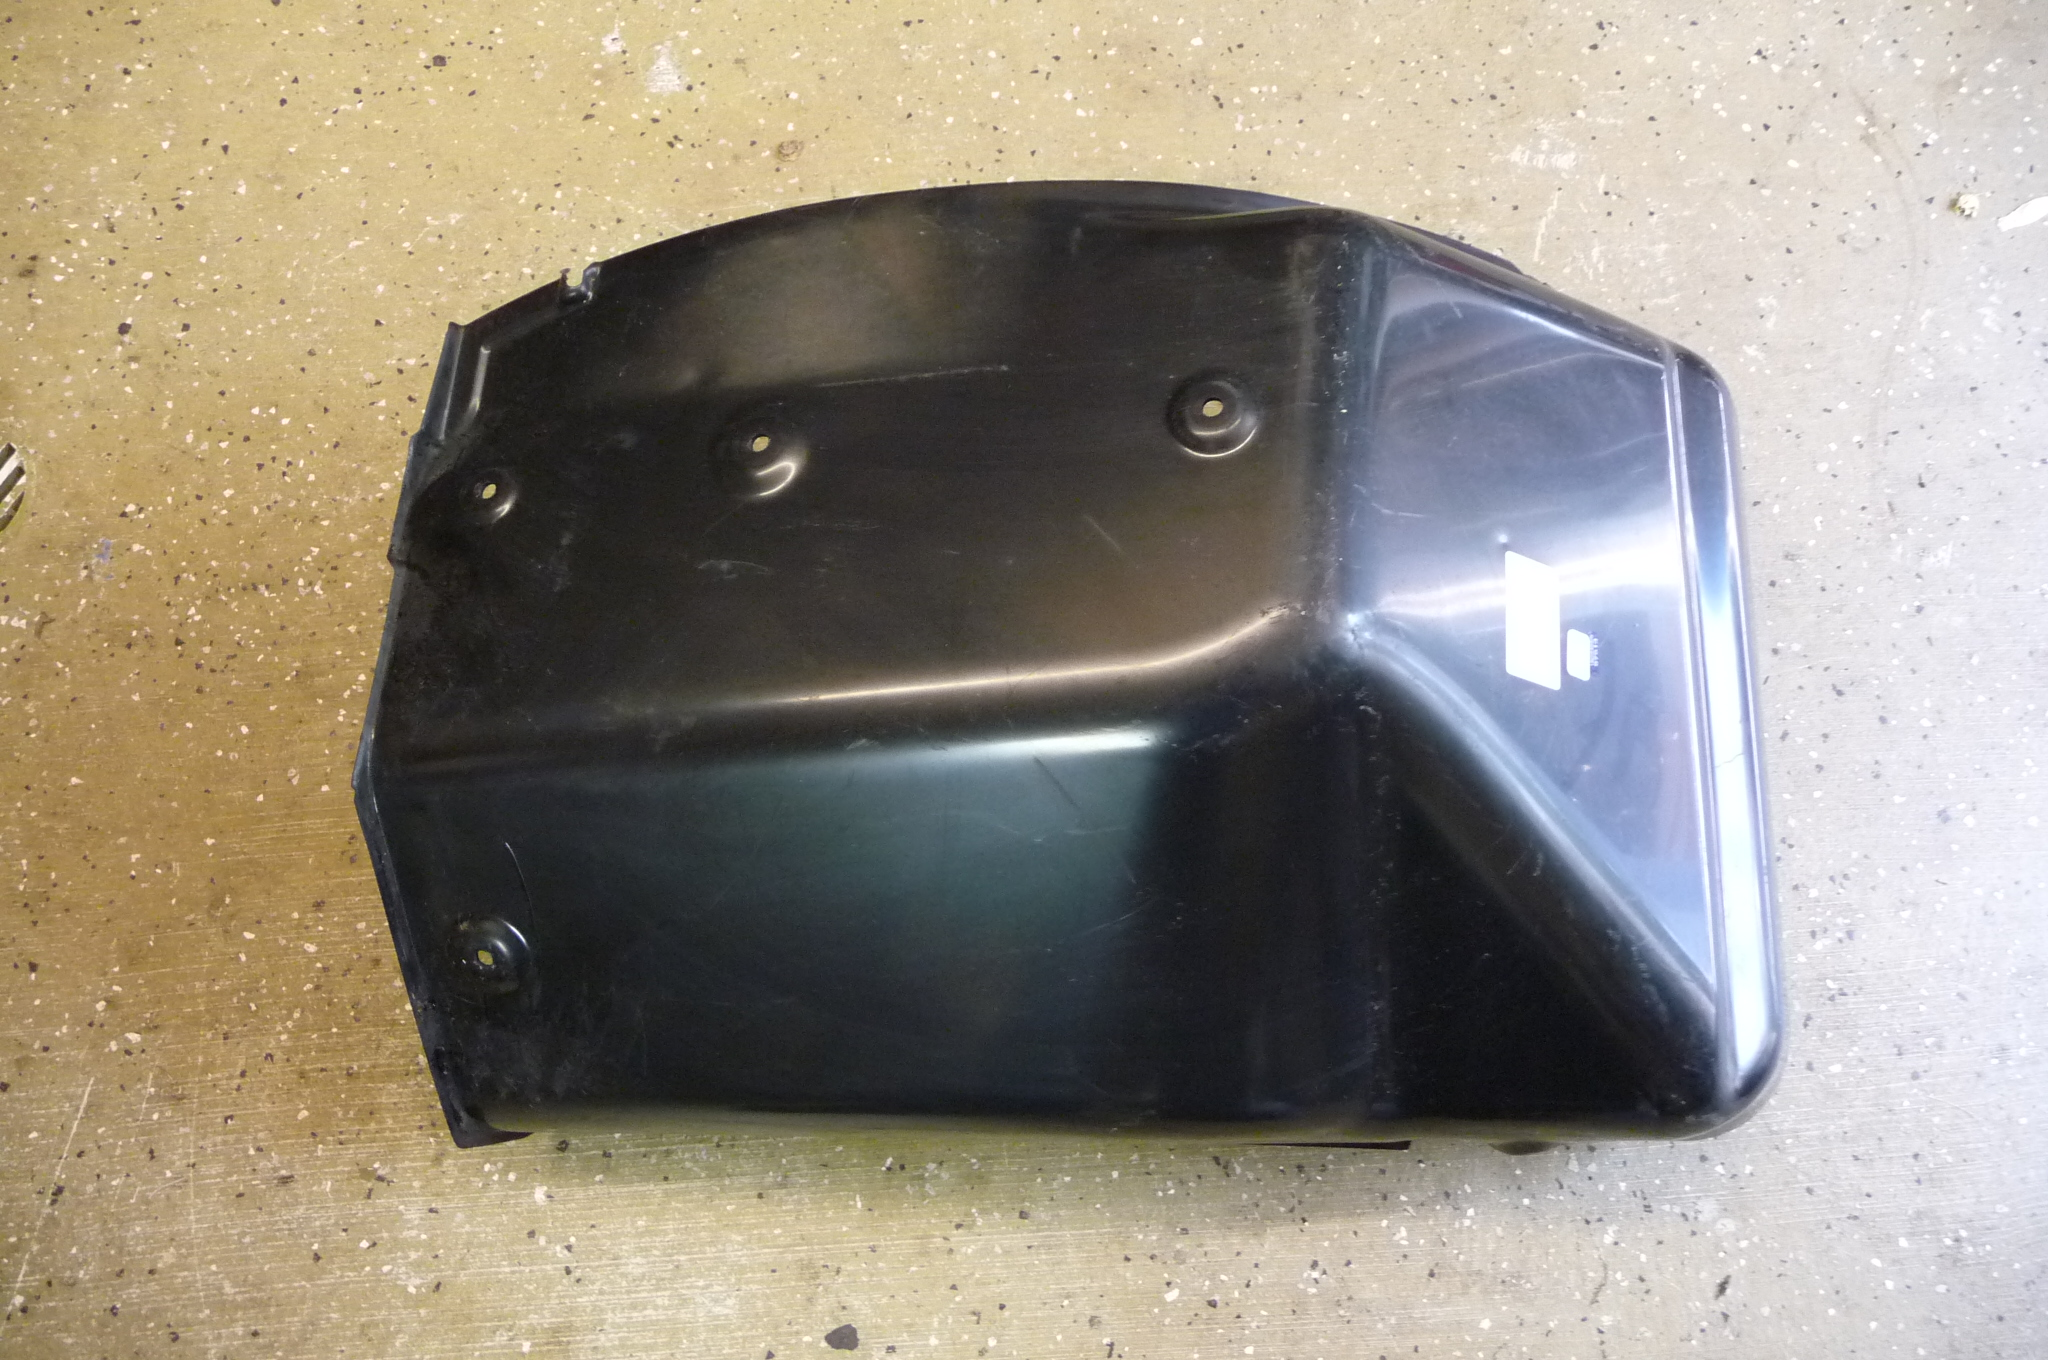 Lamborghini Gallardo LP560 Front Left Wheelhouse Arpon, Rear Portion 400821191A